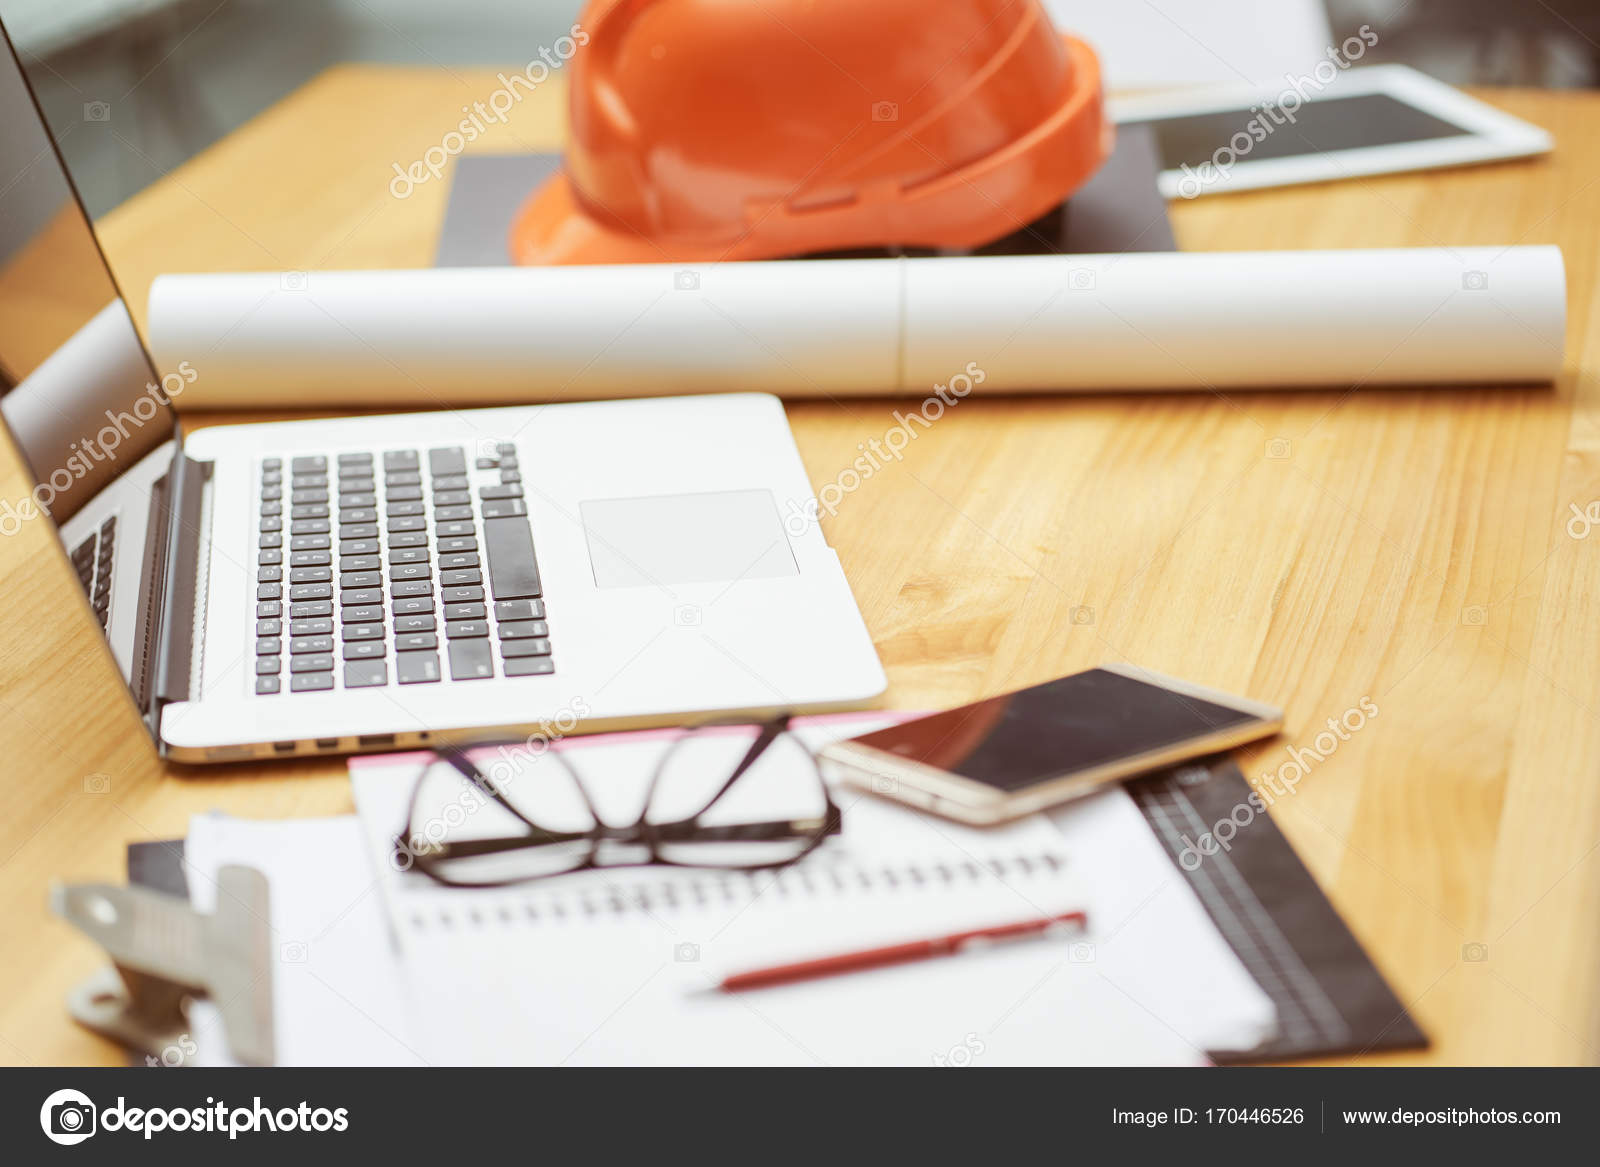 Laptop glasses note book phone blueprint orange safety helmet laptop glasses note book phone blueprint and orange safety helmet stacking on table at construction site for engineer foreman and worker selective malvernweather Images